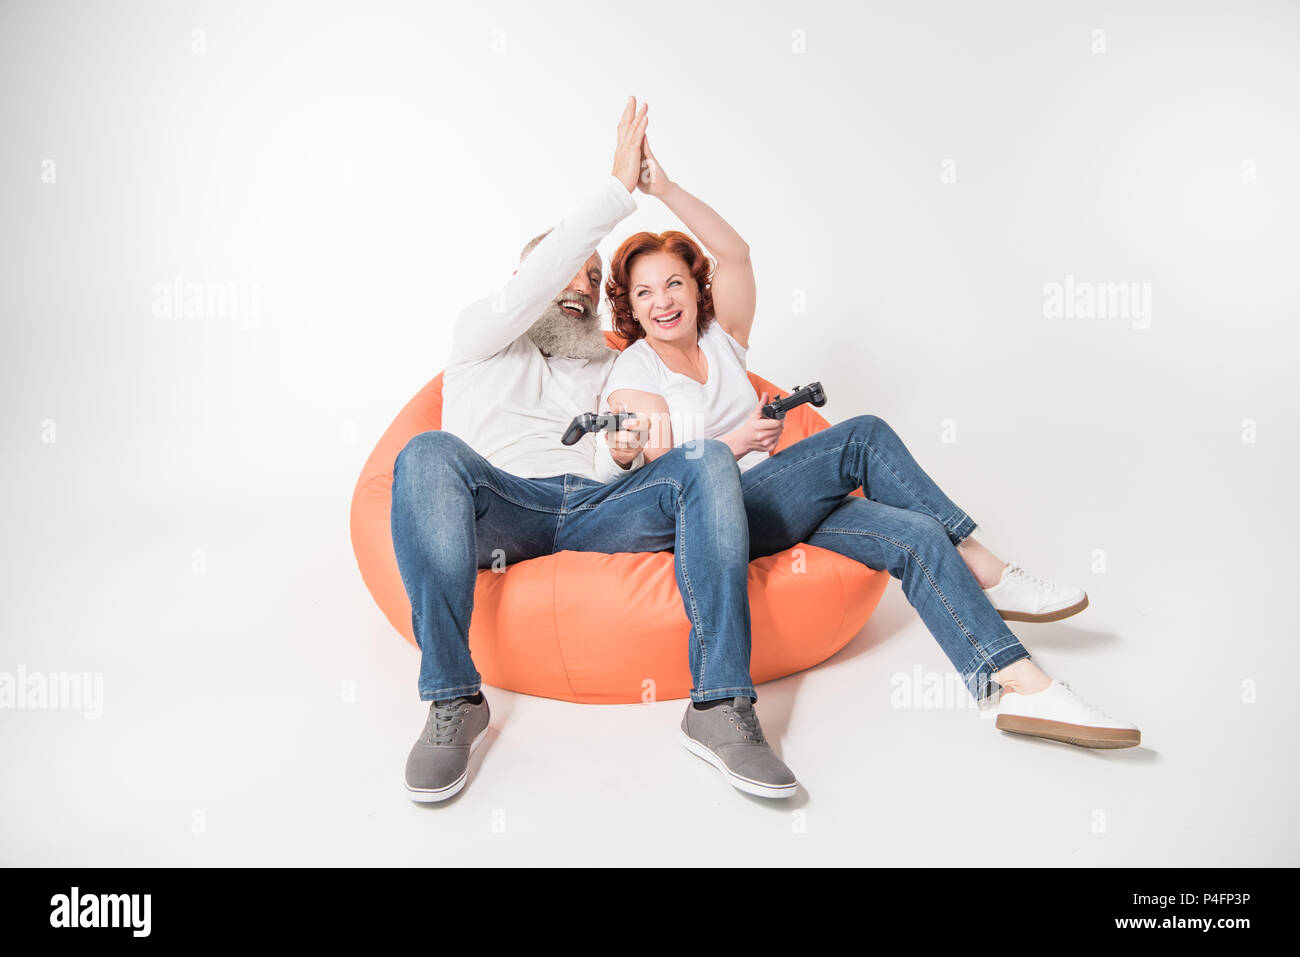 happy mature couple playing video game with joysticks and giving highfive while sitting in bean bag chair, isolated on white - Stock Image